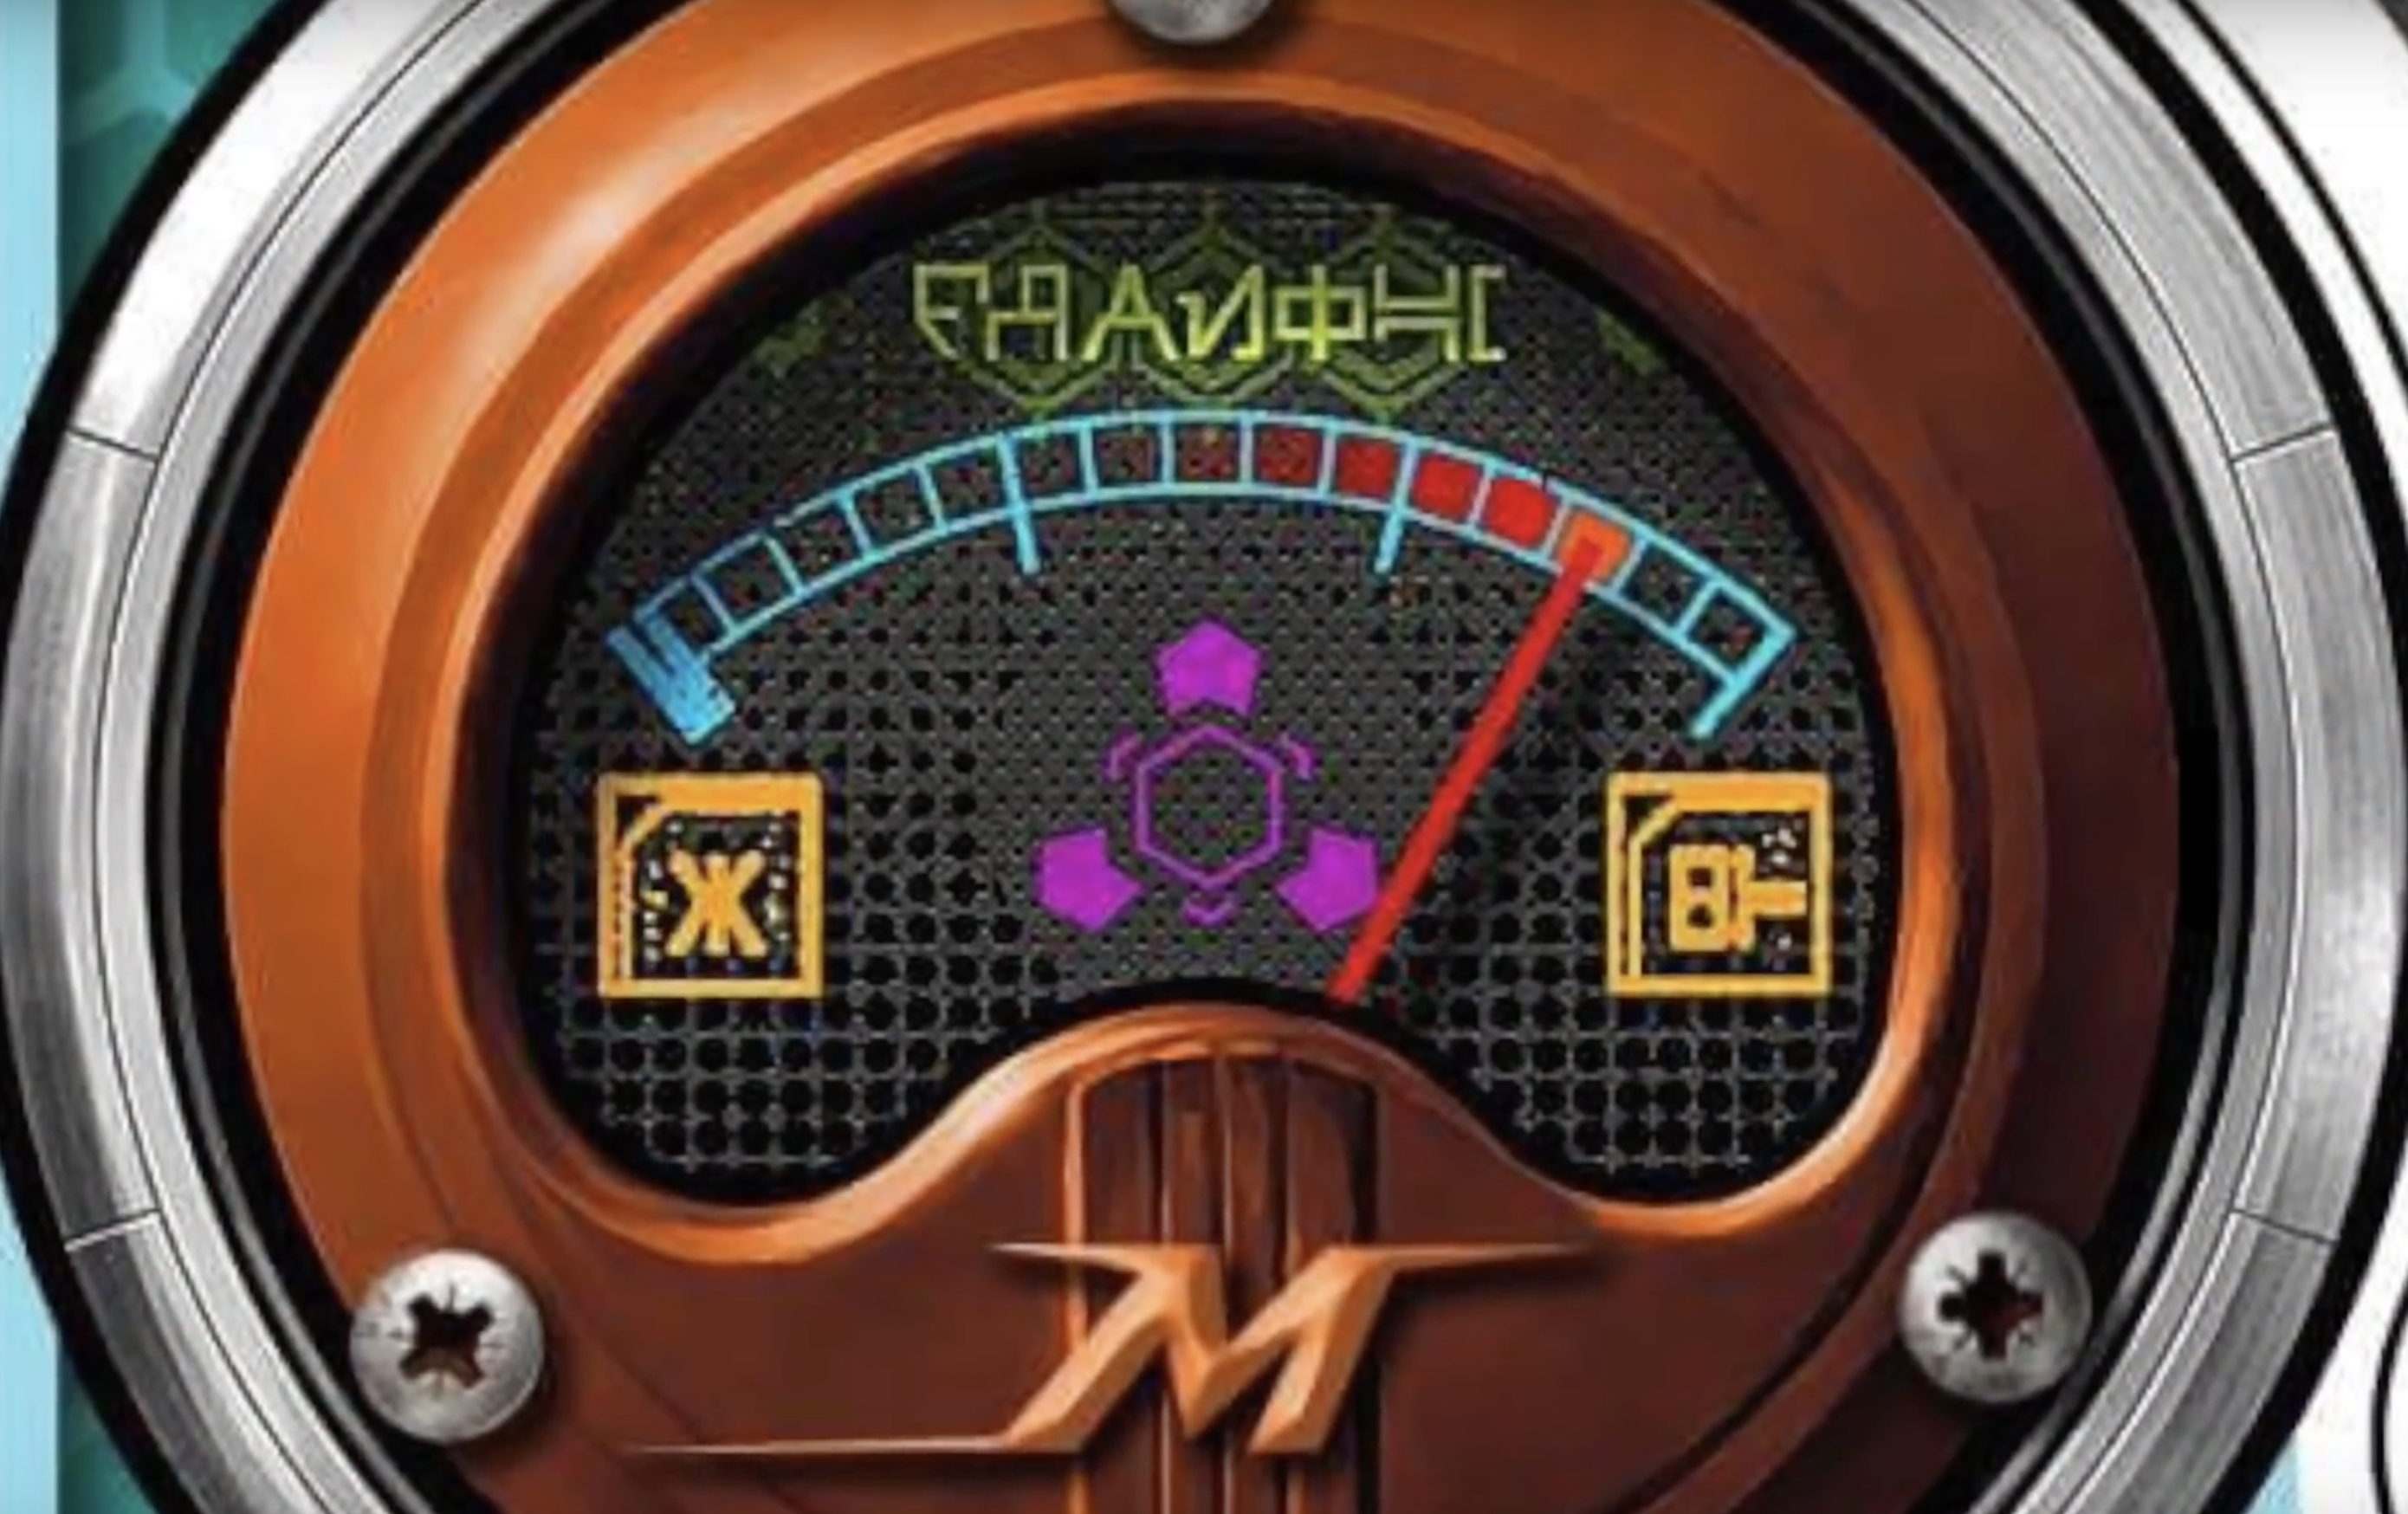 11 Cool Easter Eggs in Pinball Machines - This Week in Pinball